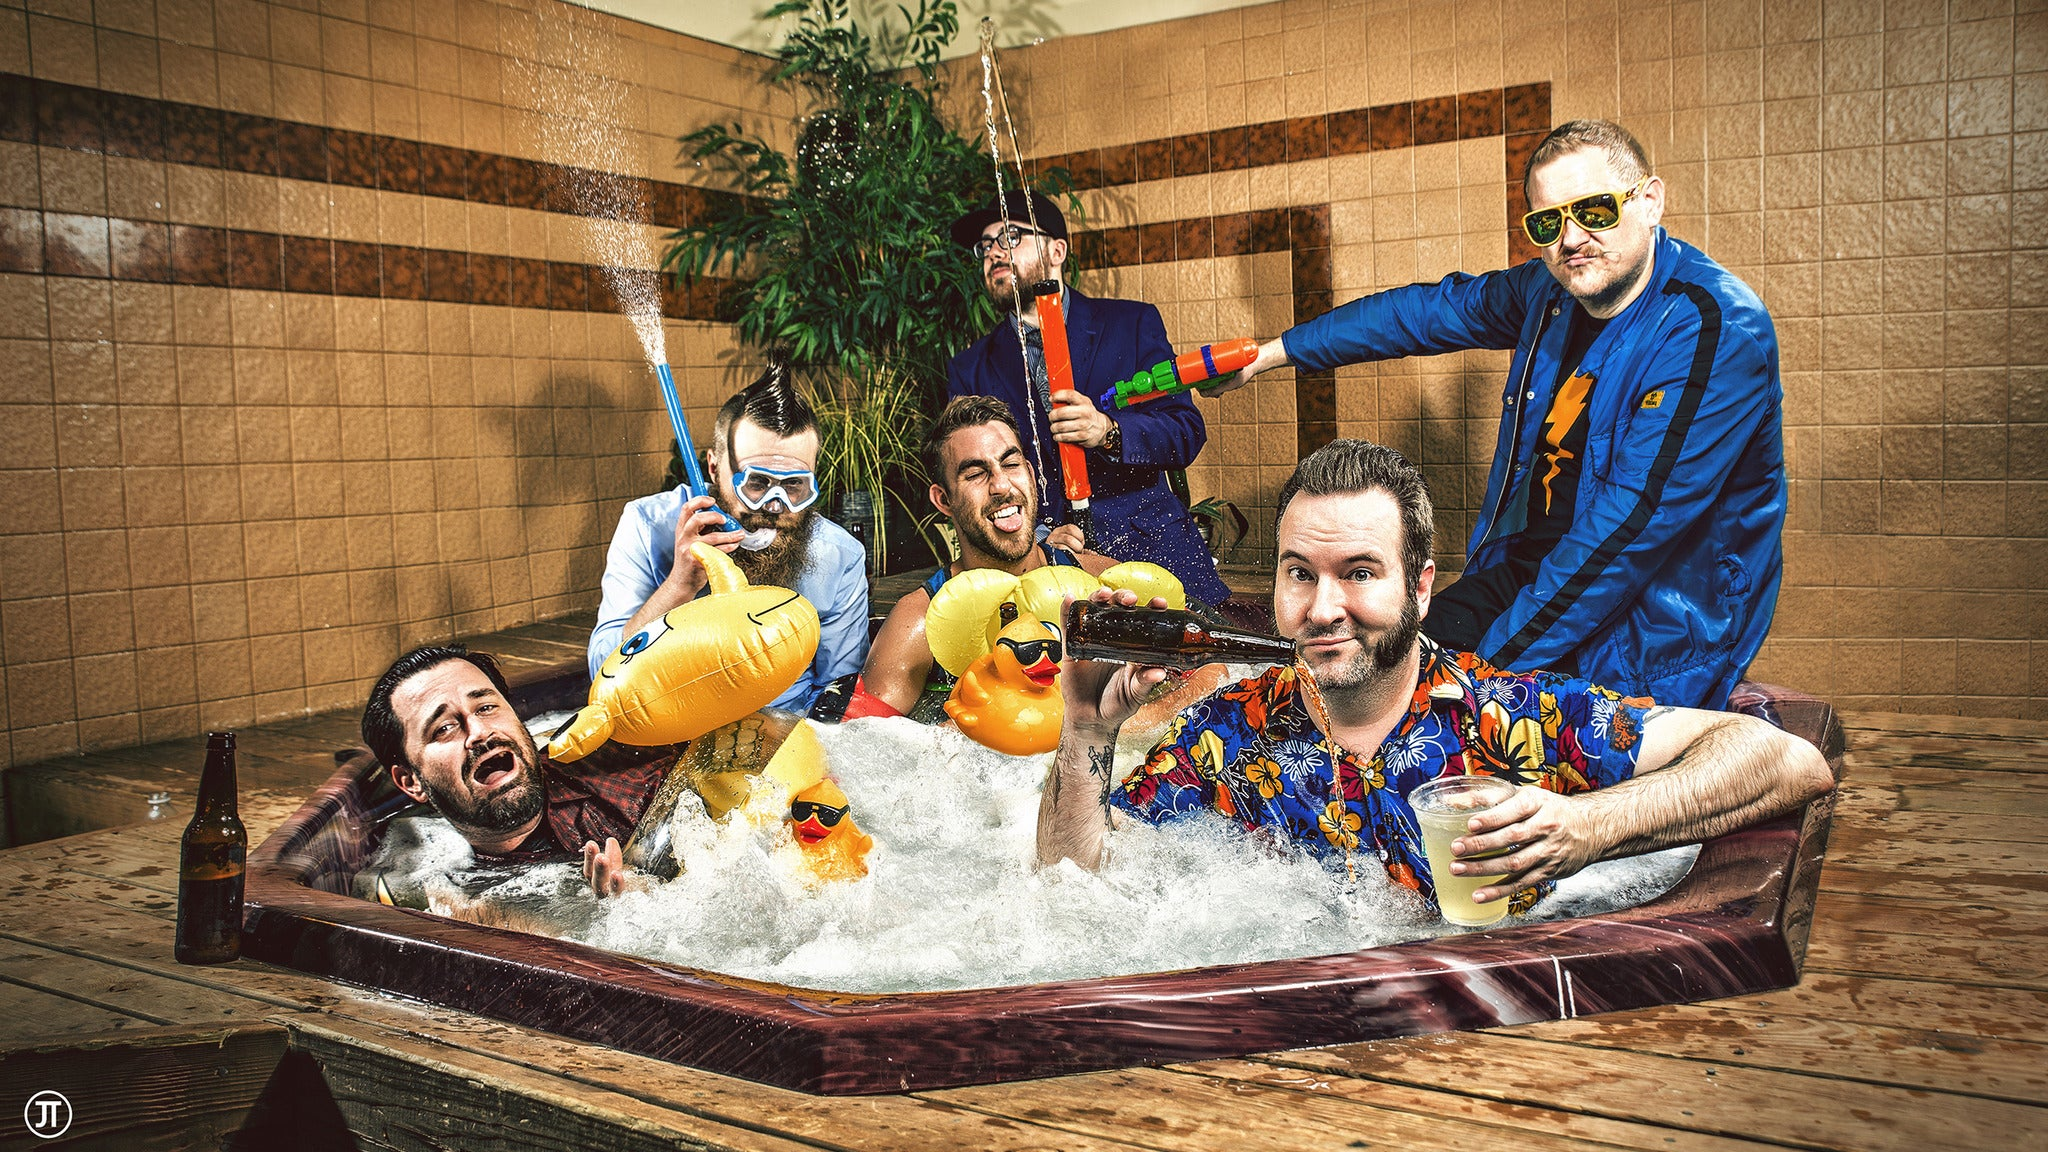 Reel Big Fish – The Beer Run